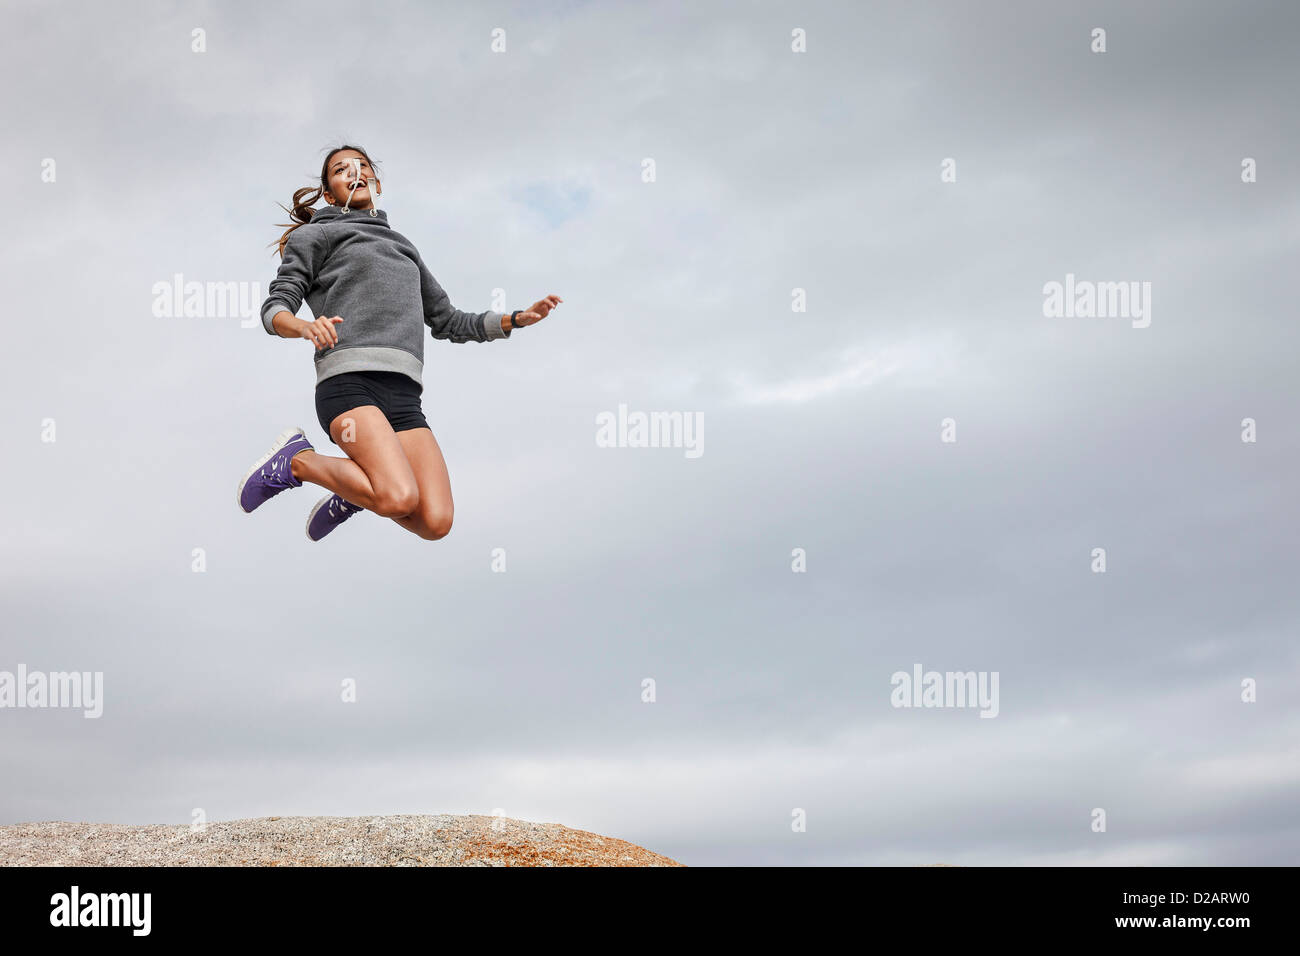 Woman jumping for joy on boulder - Stock Image